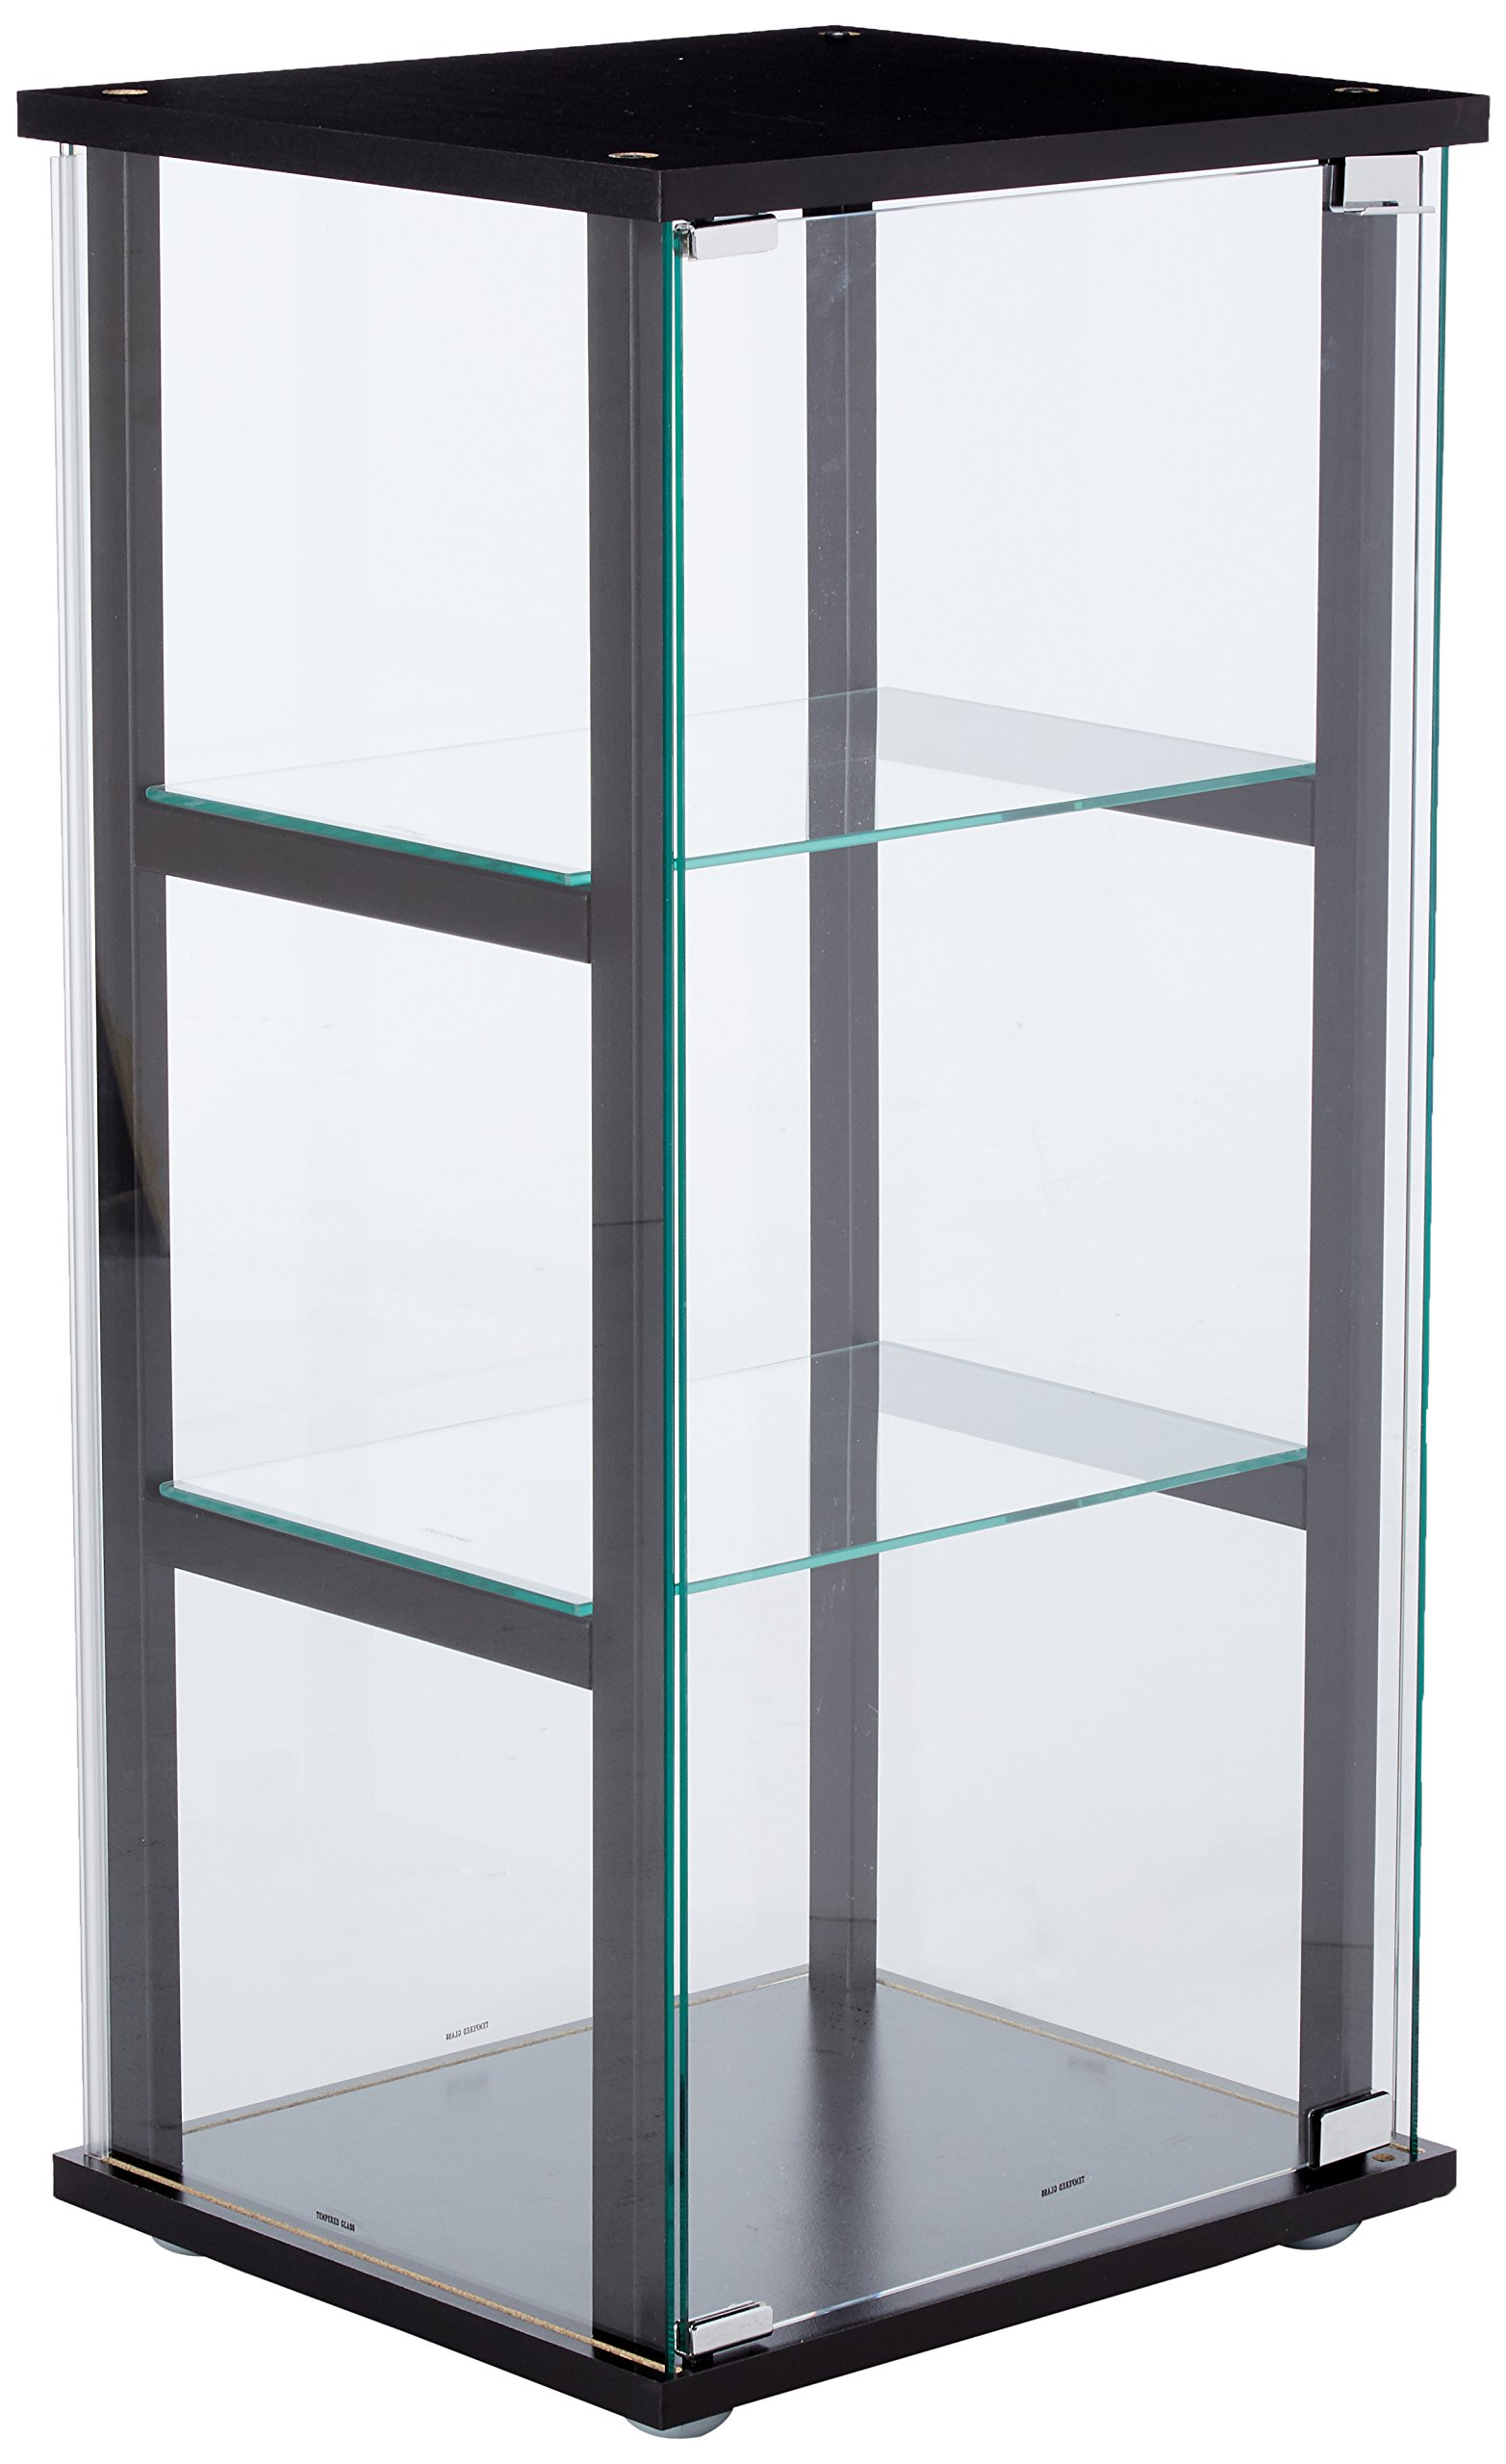 images shelfabinets four solution cabinet full curio storage or overstock display for doors sale with perfect metal size our cabinets inspirations of unforgettable metalurio glass aico